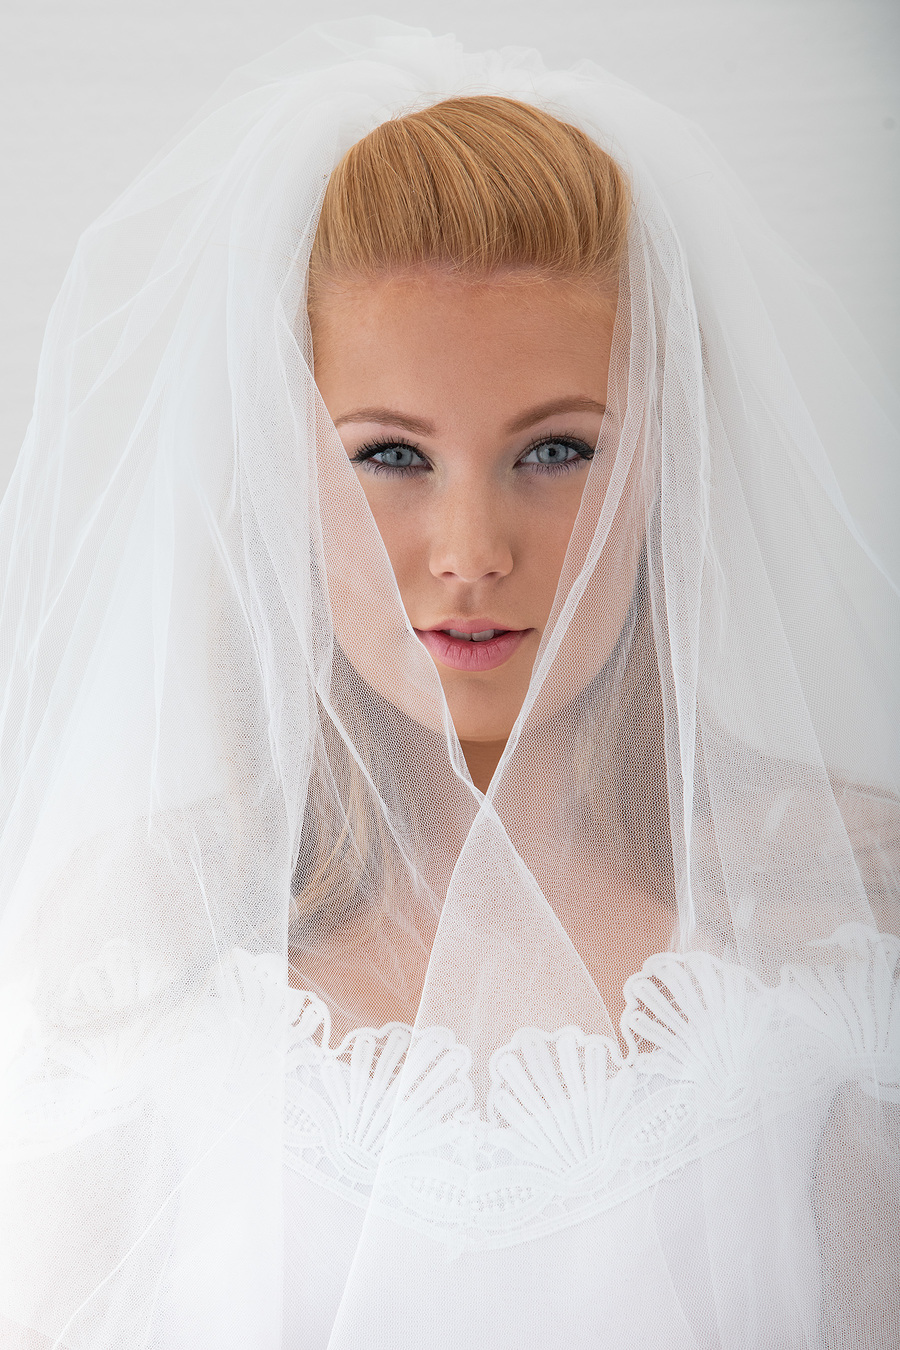 Redd212 Wedding Veil / Photography by Andy Oliver, Model Redd212, Post processing by Andy Oliver, Taken at Ollie's Studio / Uploaded 23rd September 2018 @ 05:41 PM